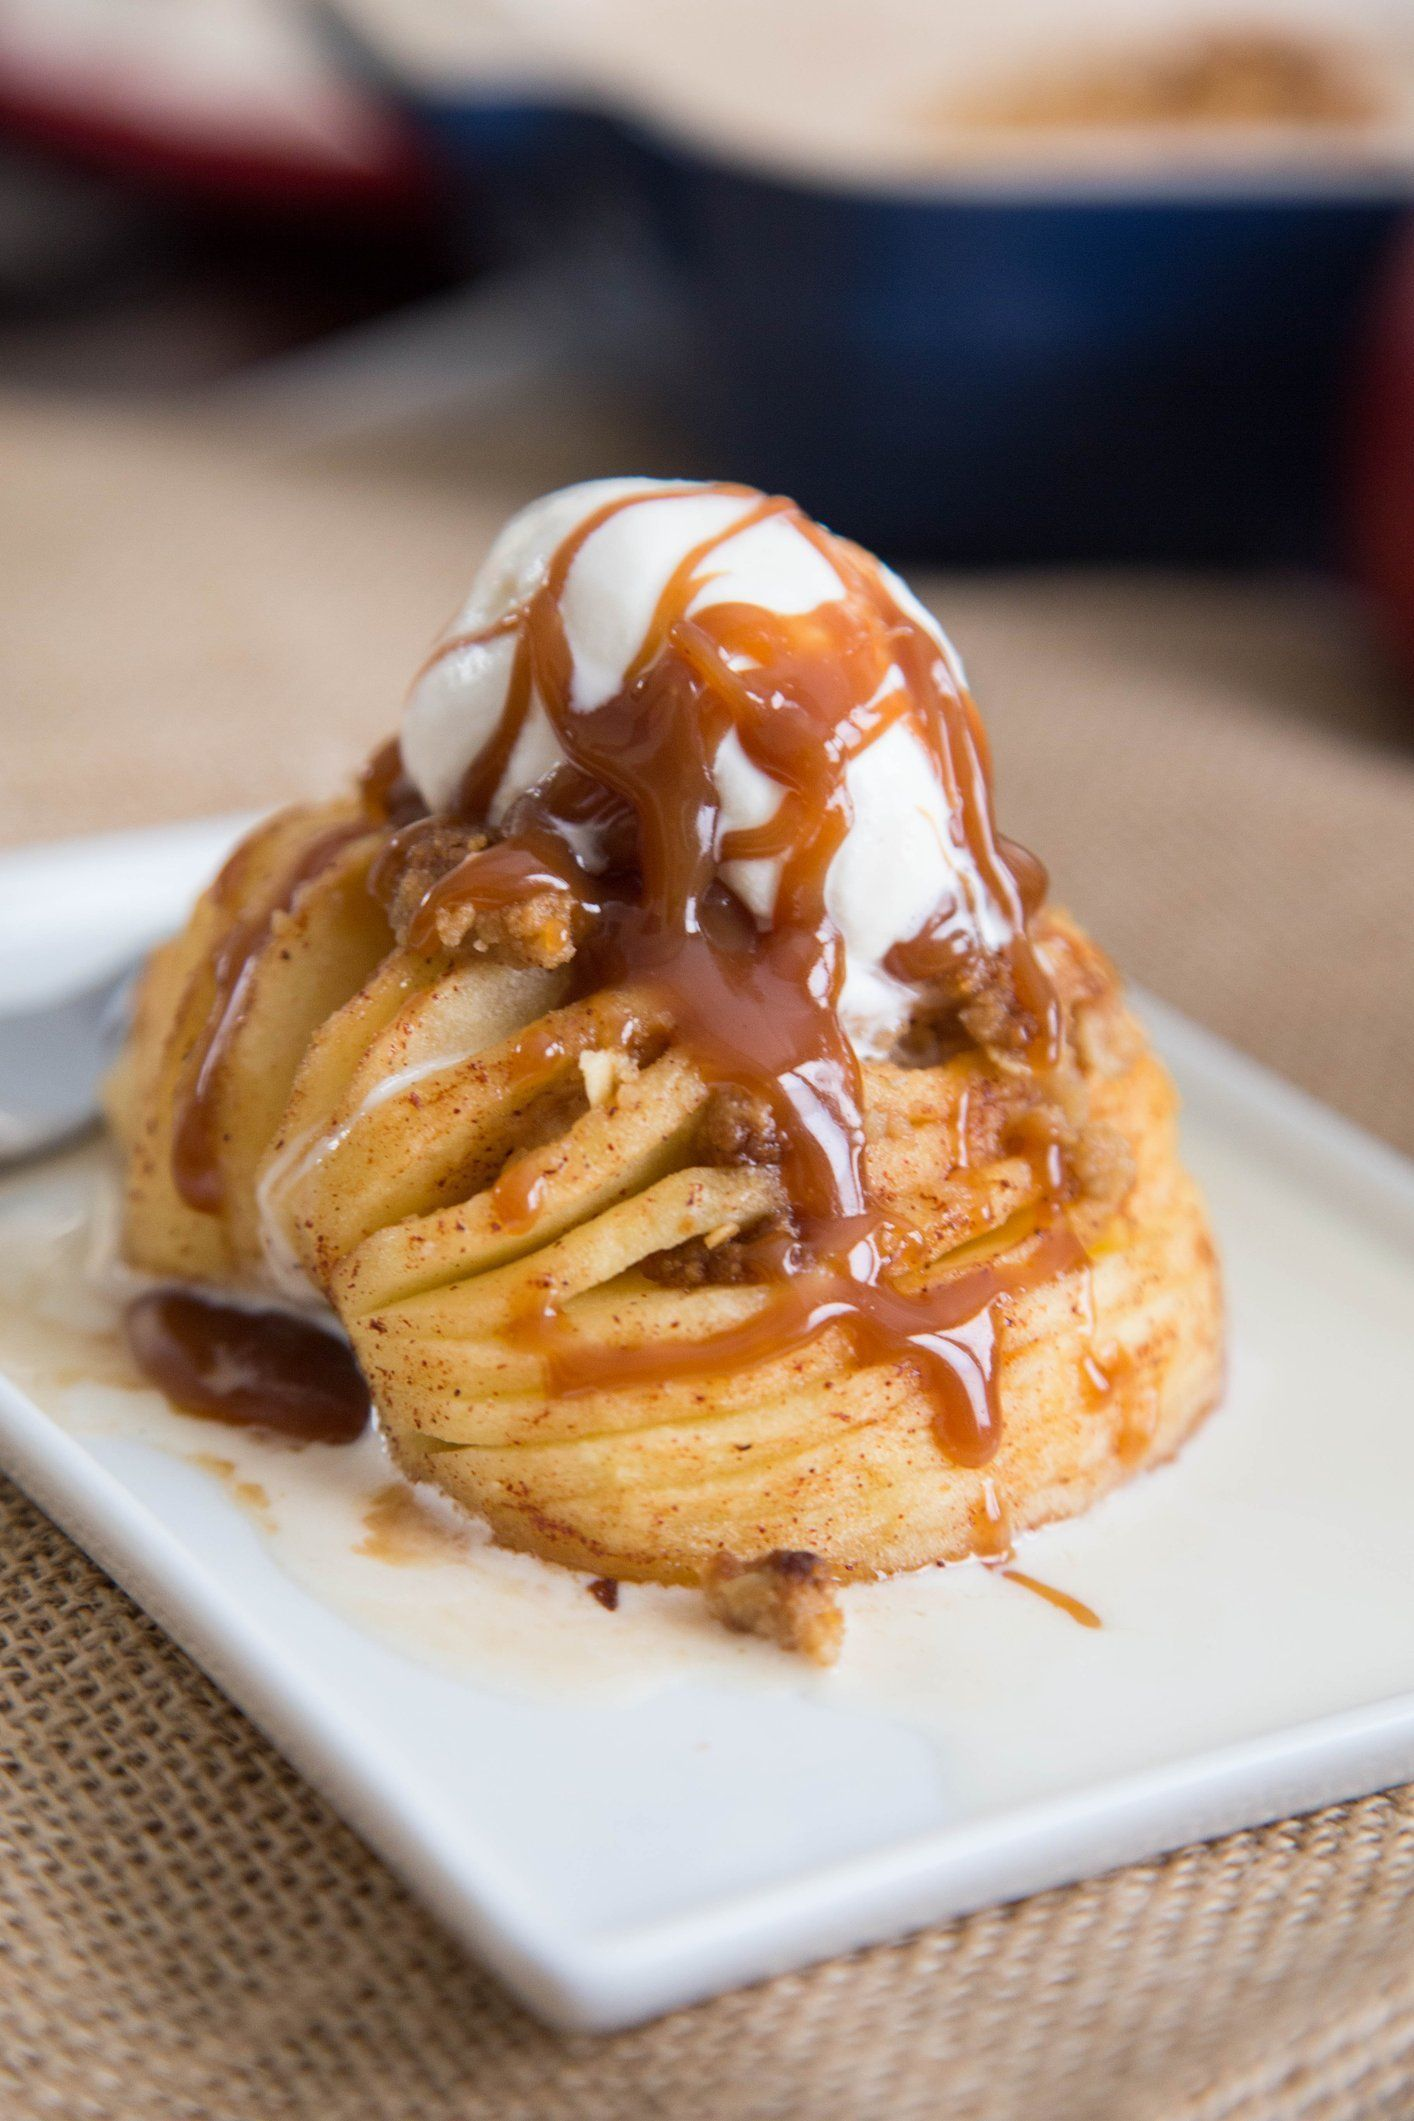 Meet Hasselback apples, the most impressive dessert you have to bake this fall…